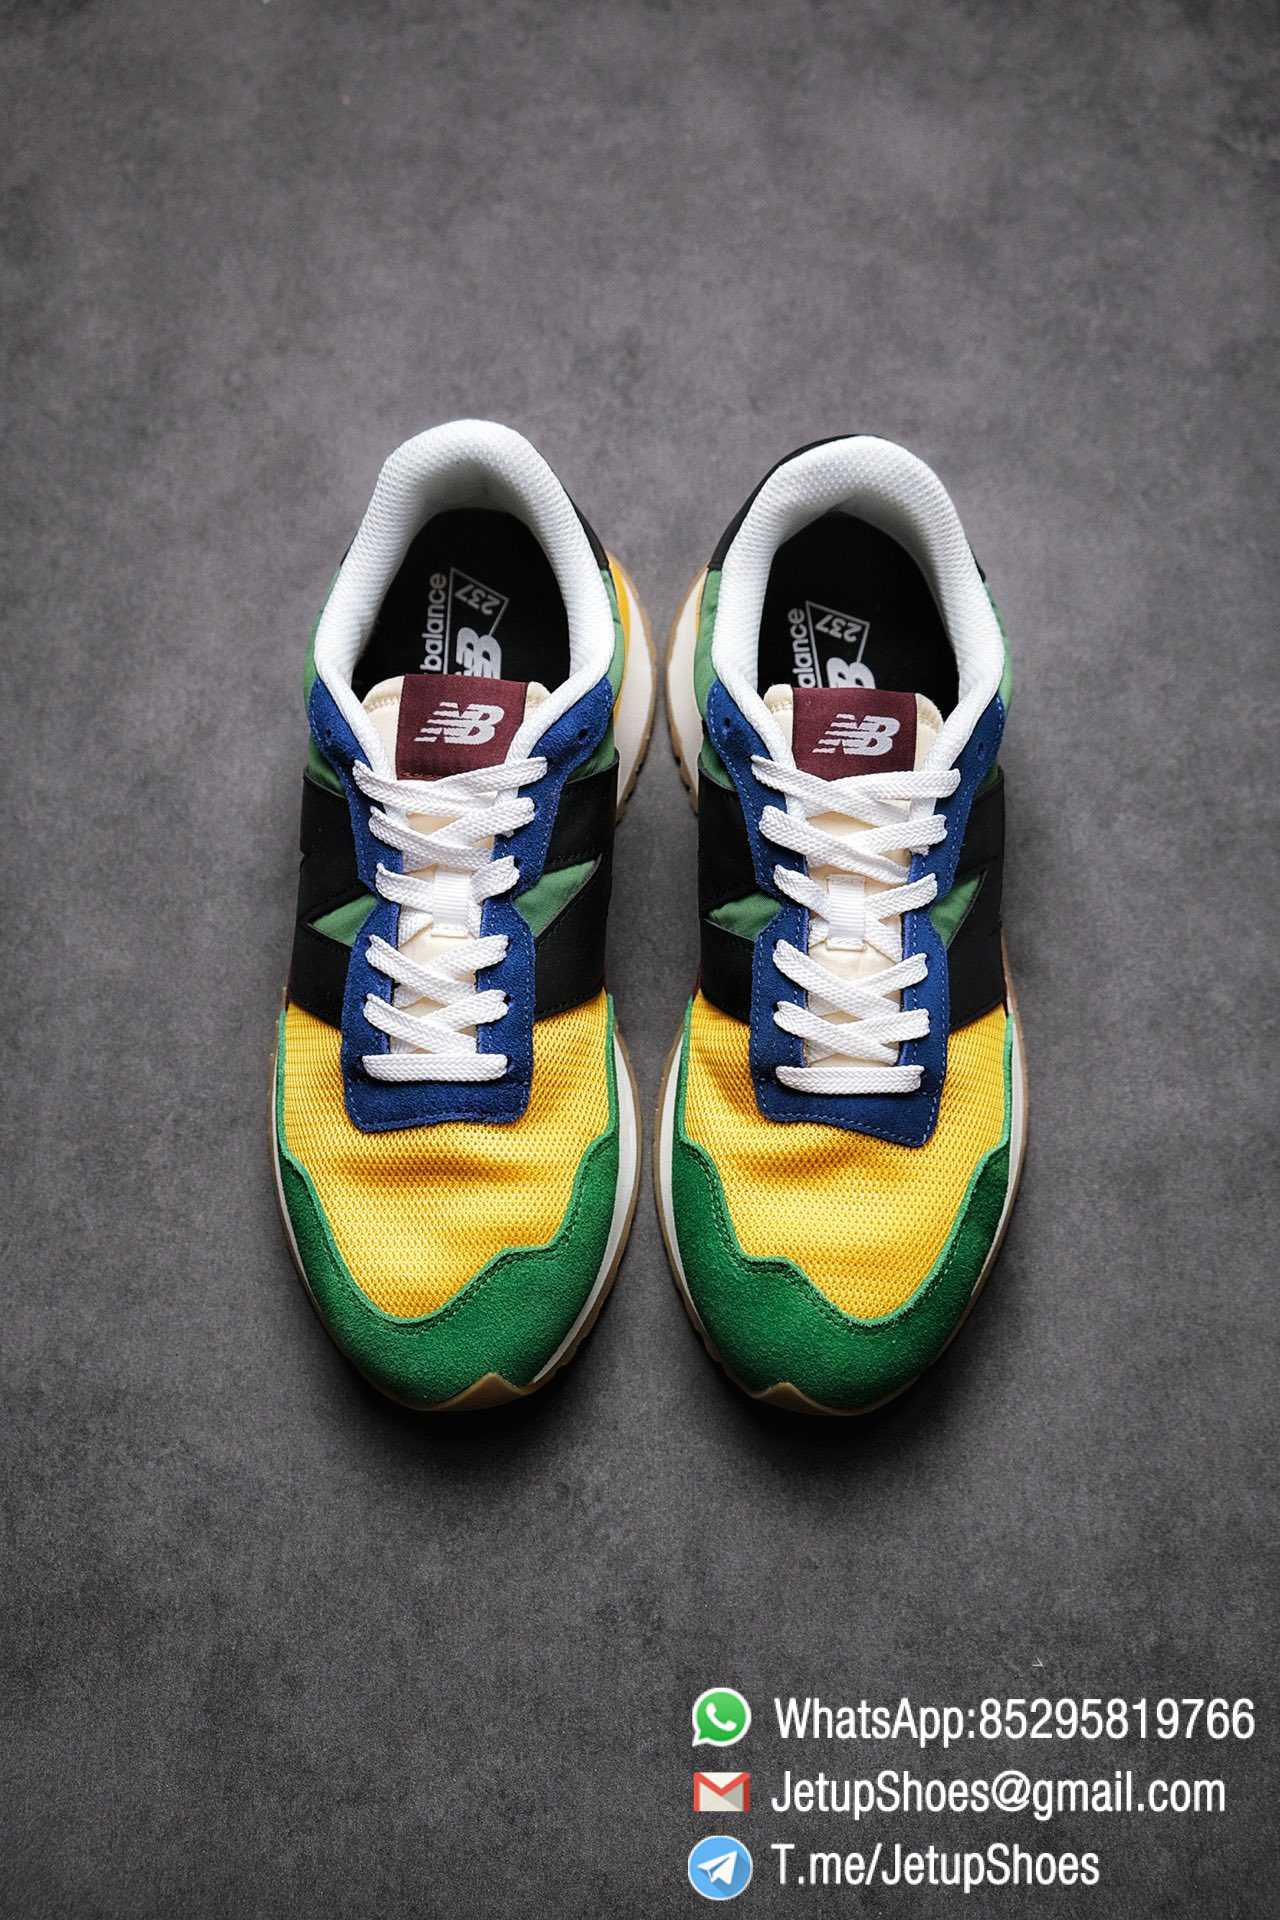 Best Replica New Balance 237 Green Blue Yellow Multi Color SKU MS237LB1 High Quality Fake Running Shoes 02